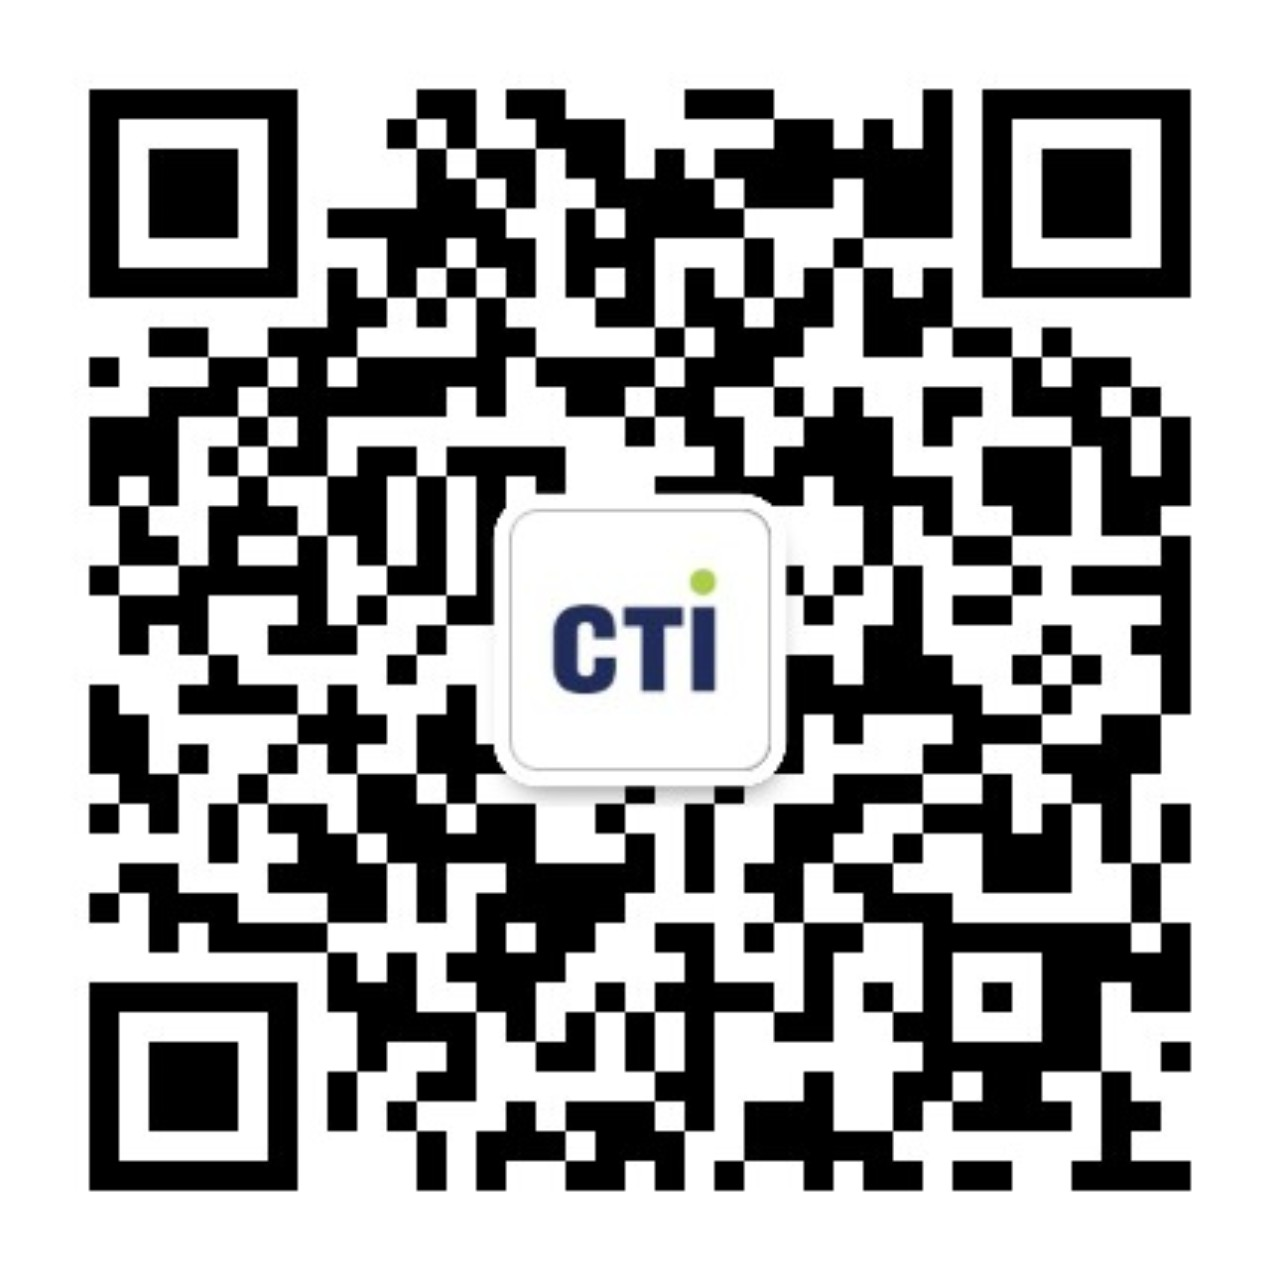 https://malloss.blob.core.chinacloudapi.cn/malloss-container/huace/images/OfficialWeChat.png